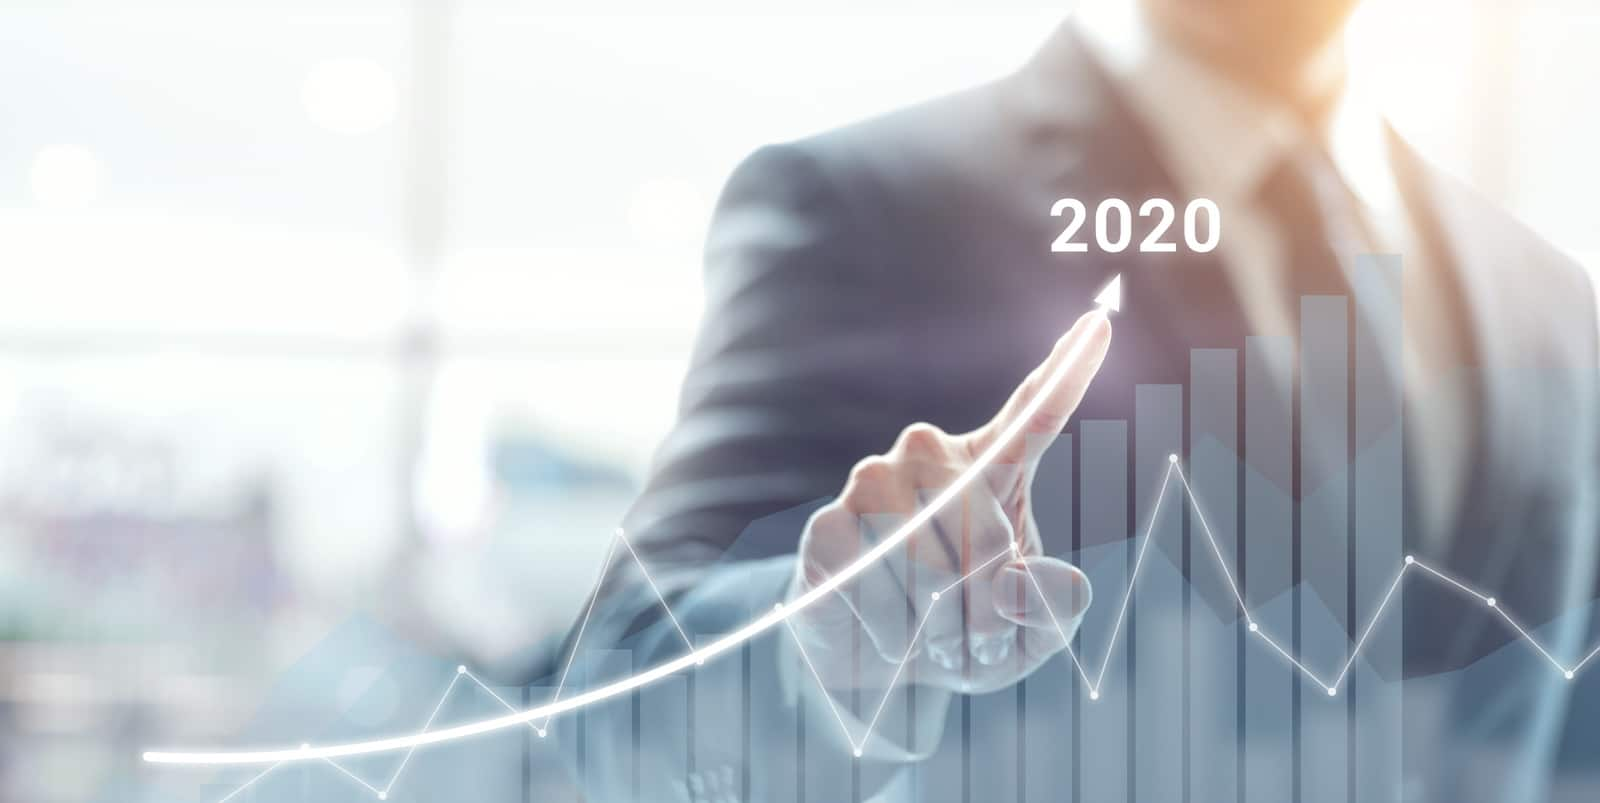 luxury brands growth in 2020